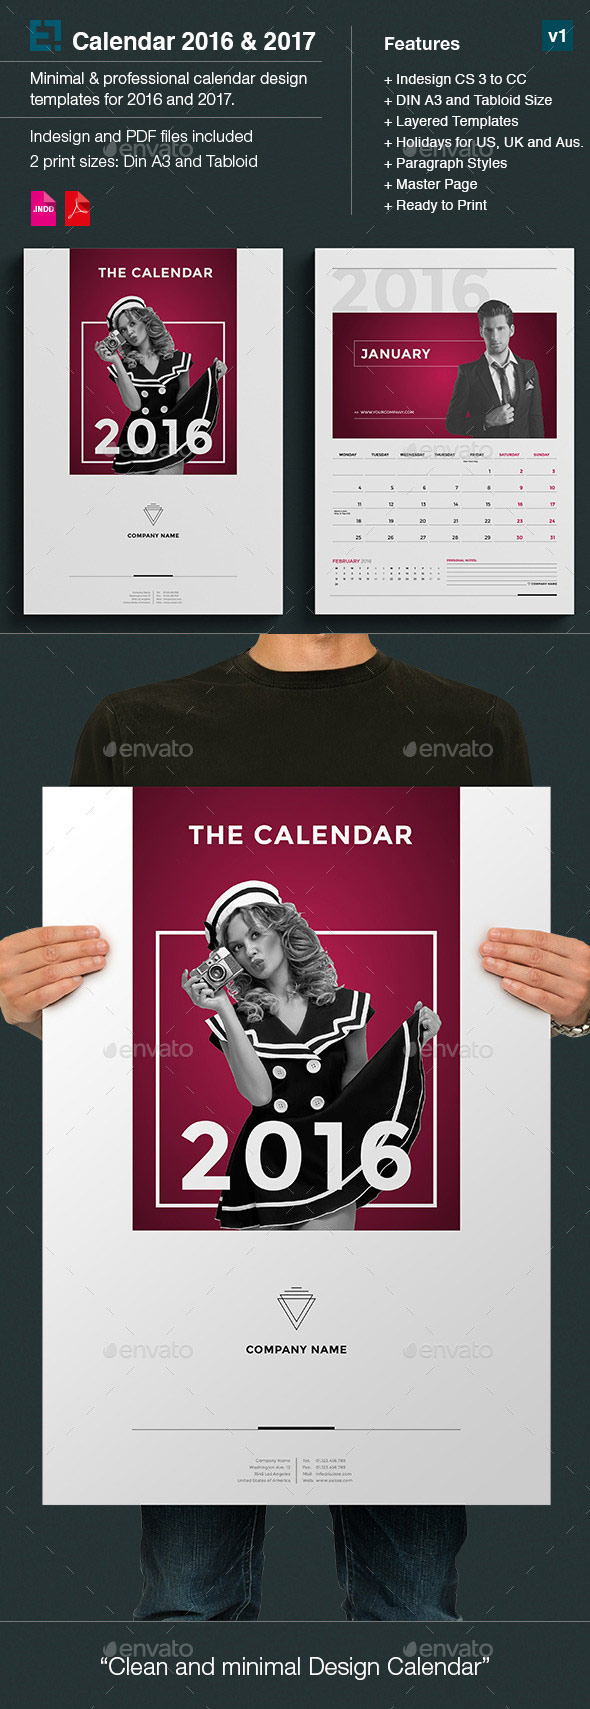 Minimal photo calendar template monthly 2016